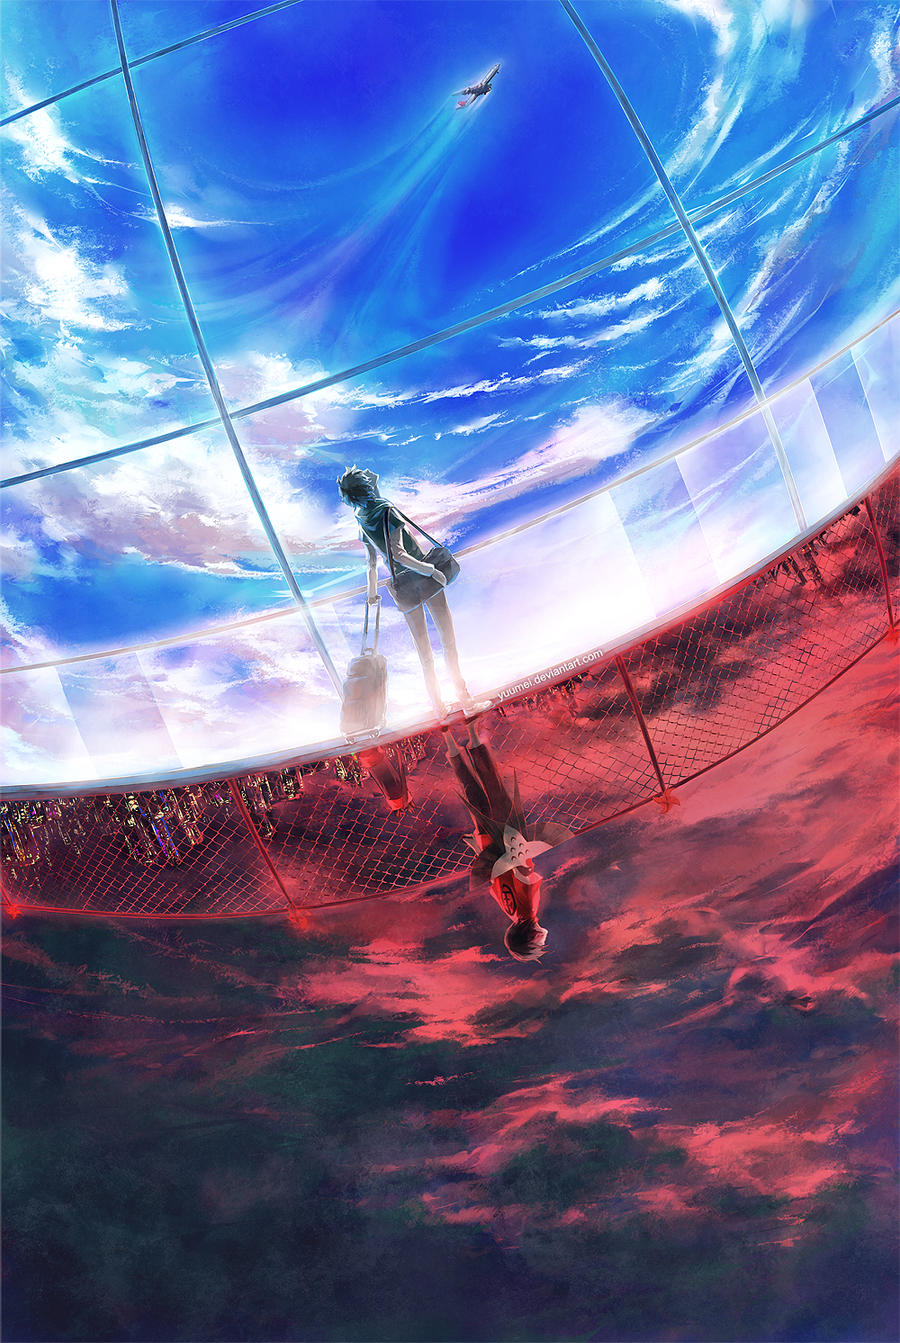 Knite: Two Worlds, One Dream